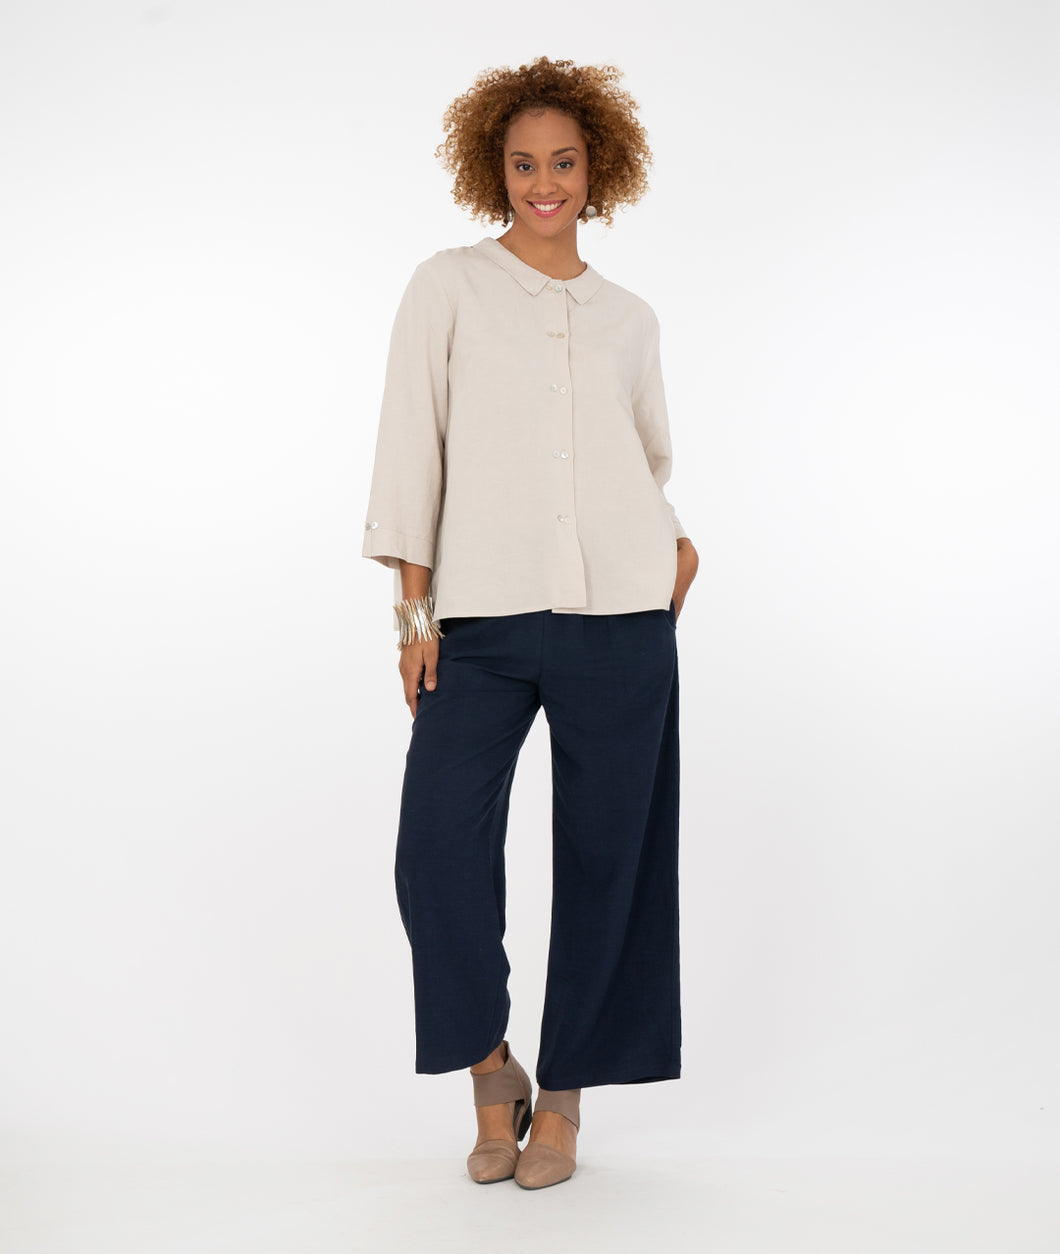 model in a bone color button up top with navy pants in front of a white background